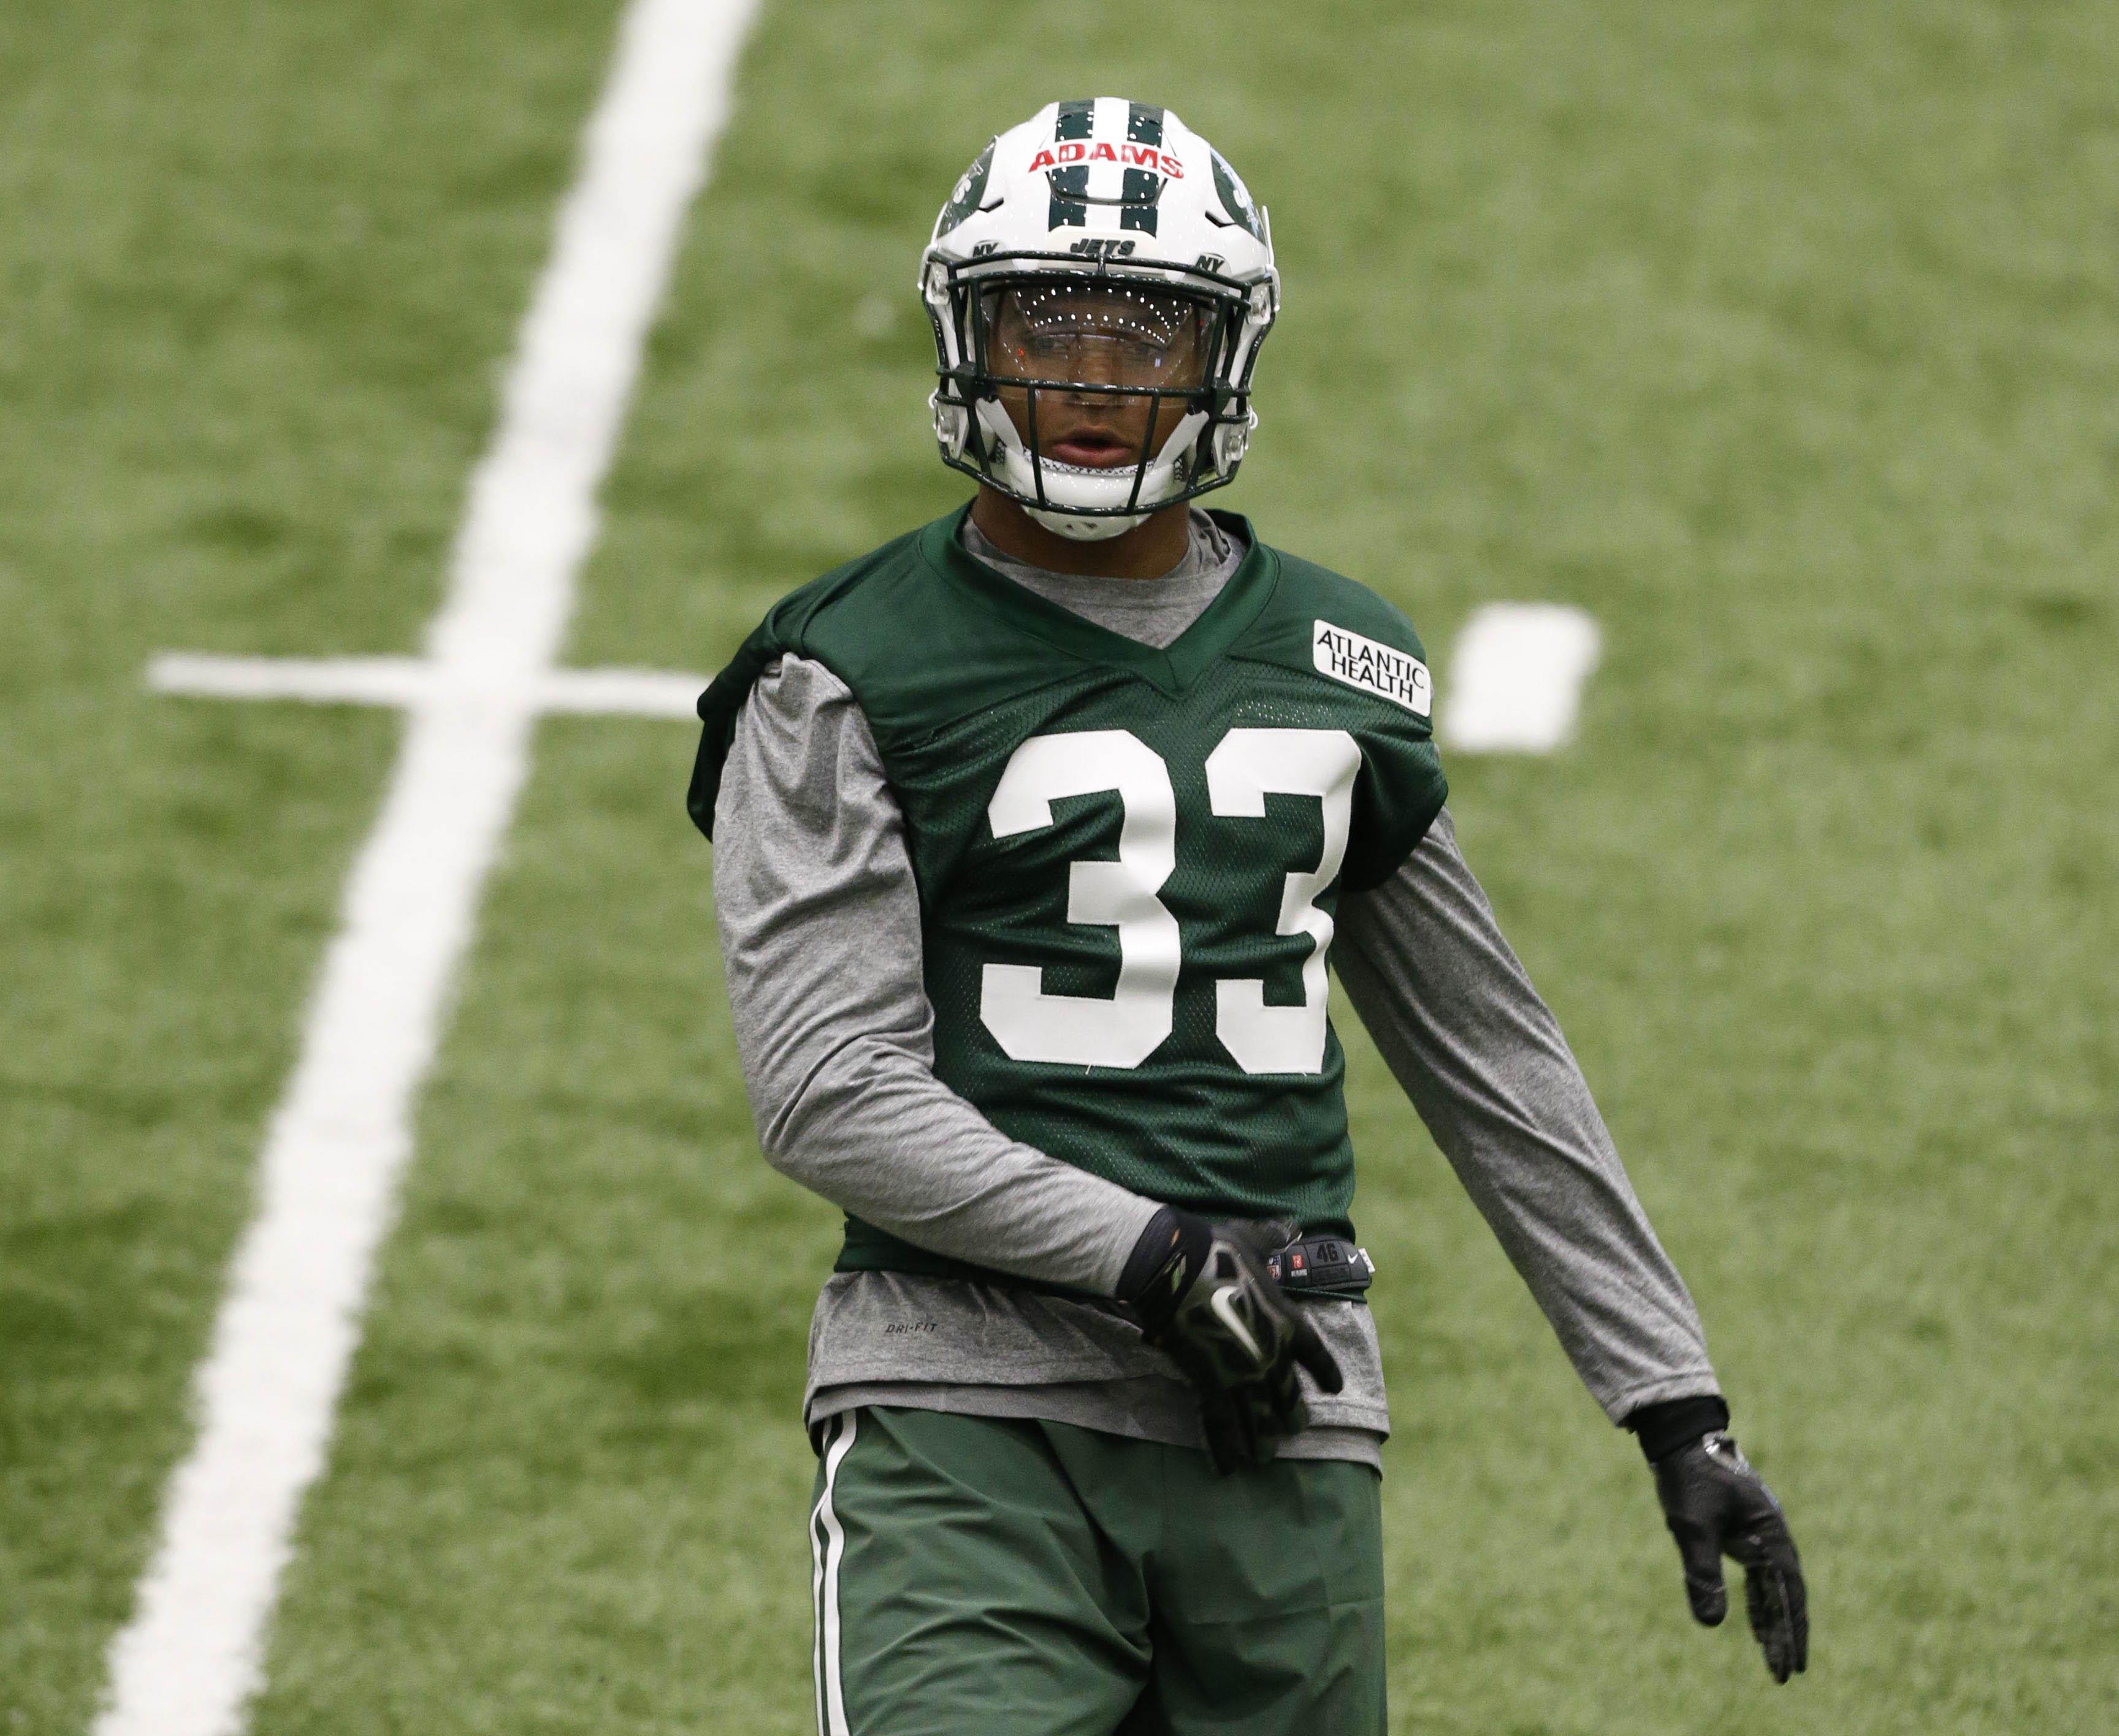 10043176-nfl-new-york-jets-rookie-minicamp